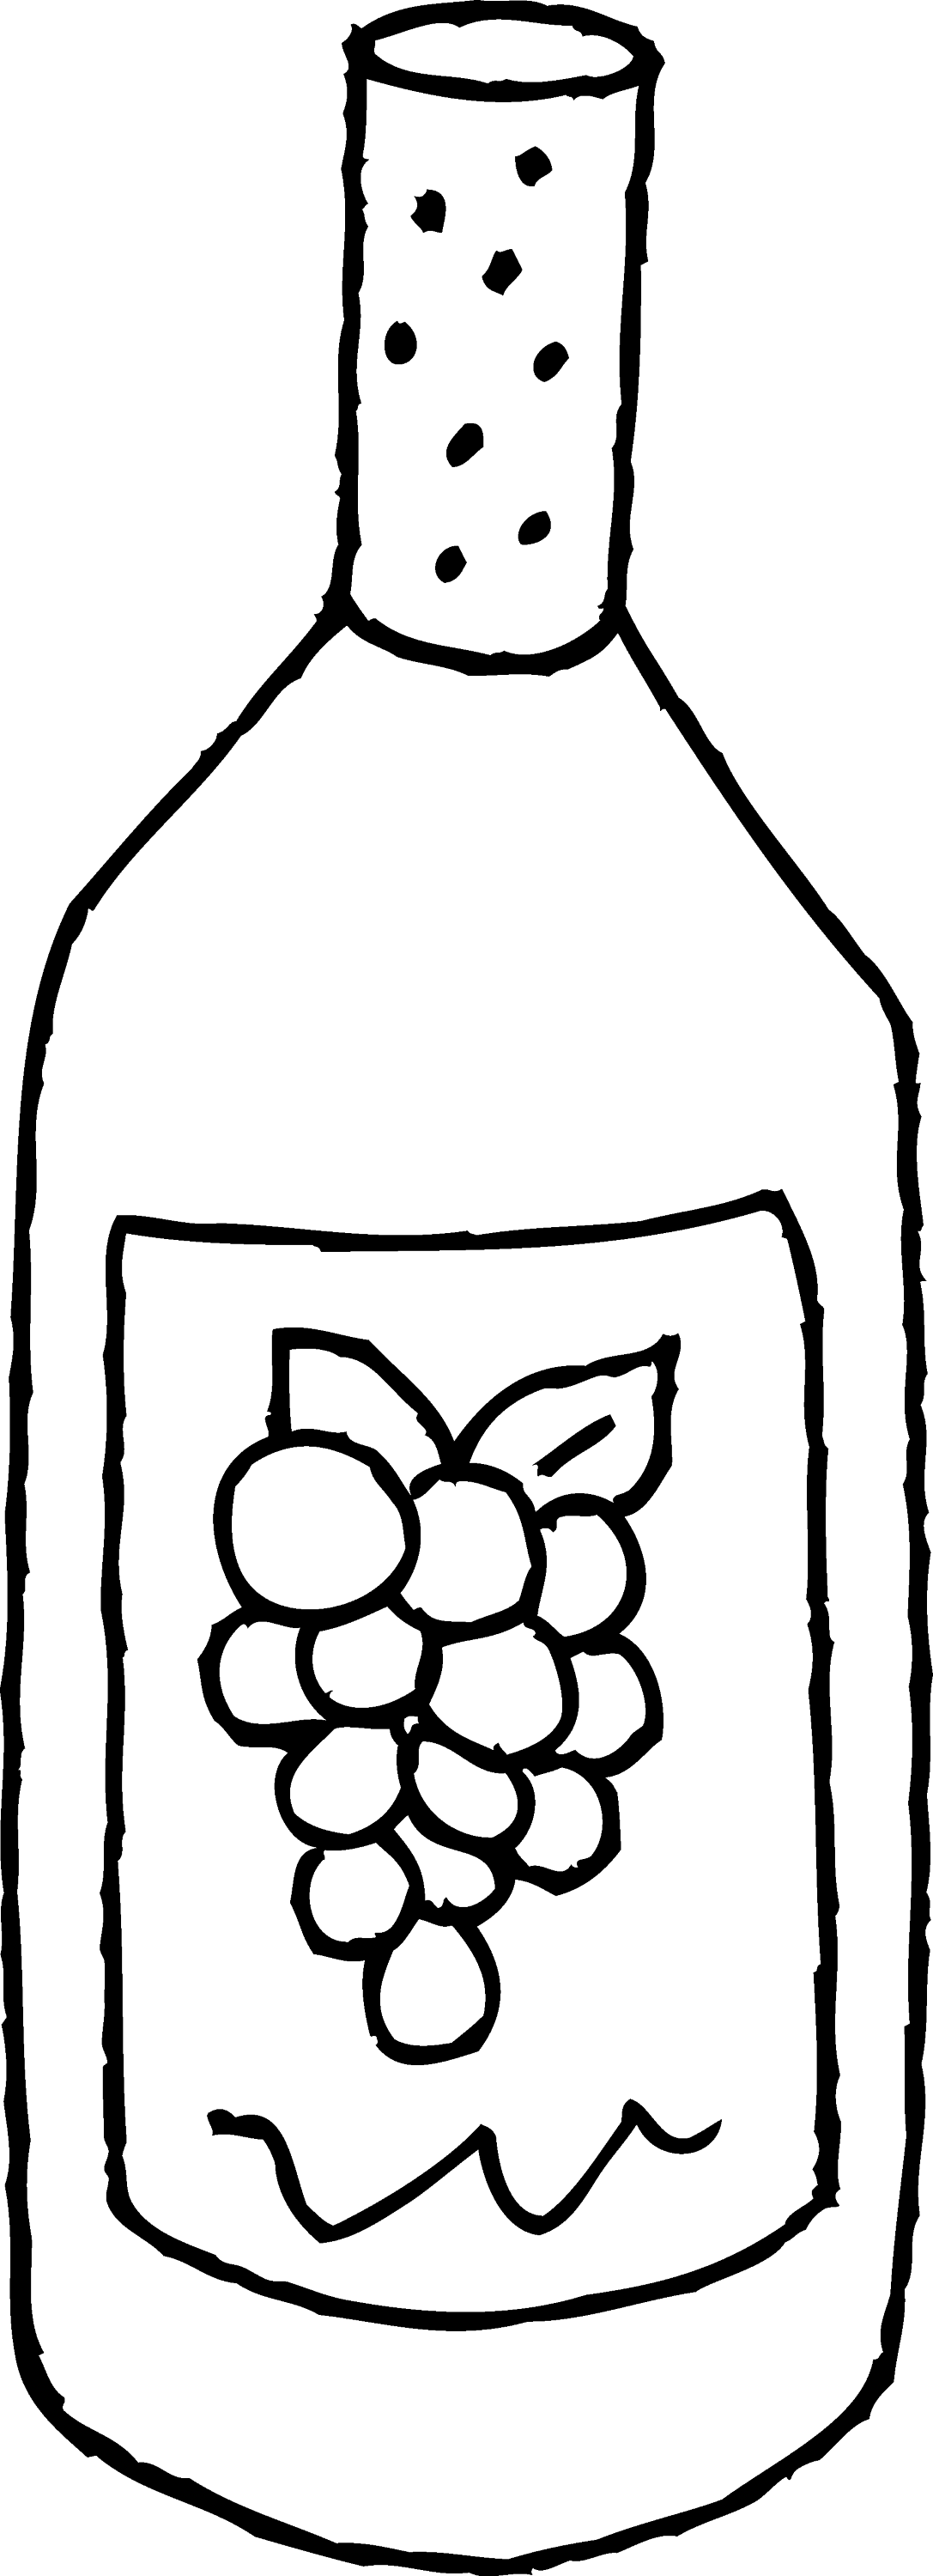 wine coloring book pages - photo#6